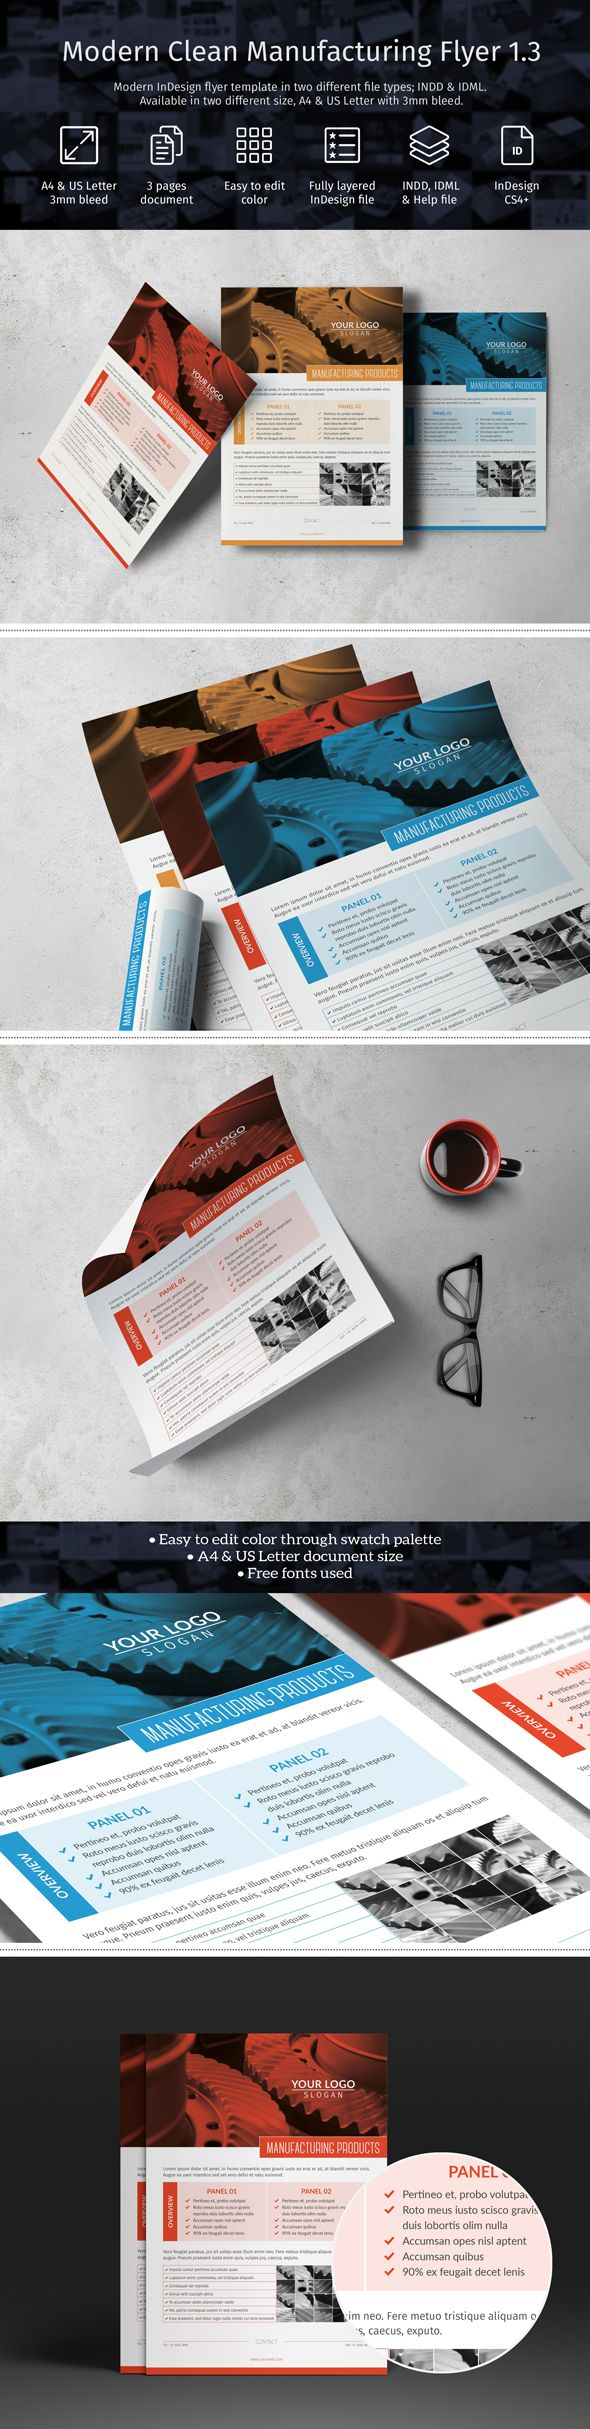 Modern manufacturing flyer template in two different file types; INDD & IDML. Template available in A4 & US Letter size with 3 mm bleed. Compatible with Adobe InDesign CS4 or higher [goo.gl/gXpmpX].